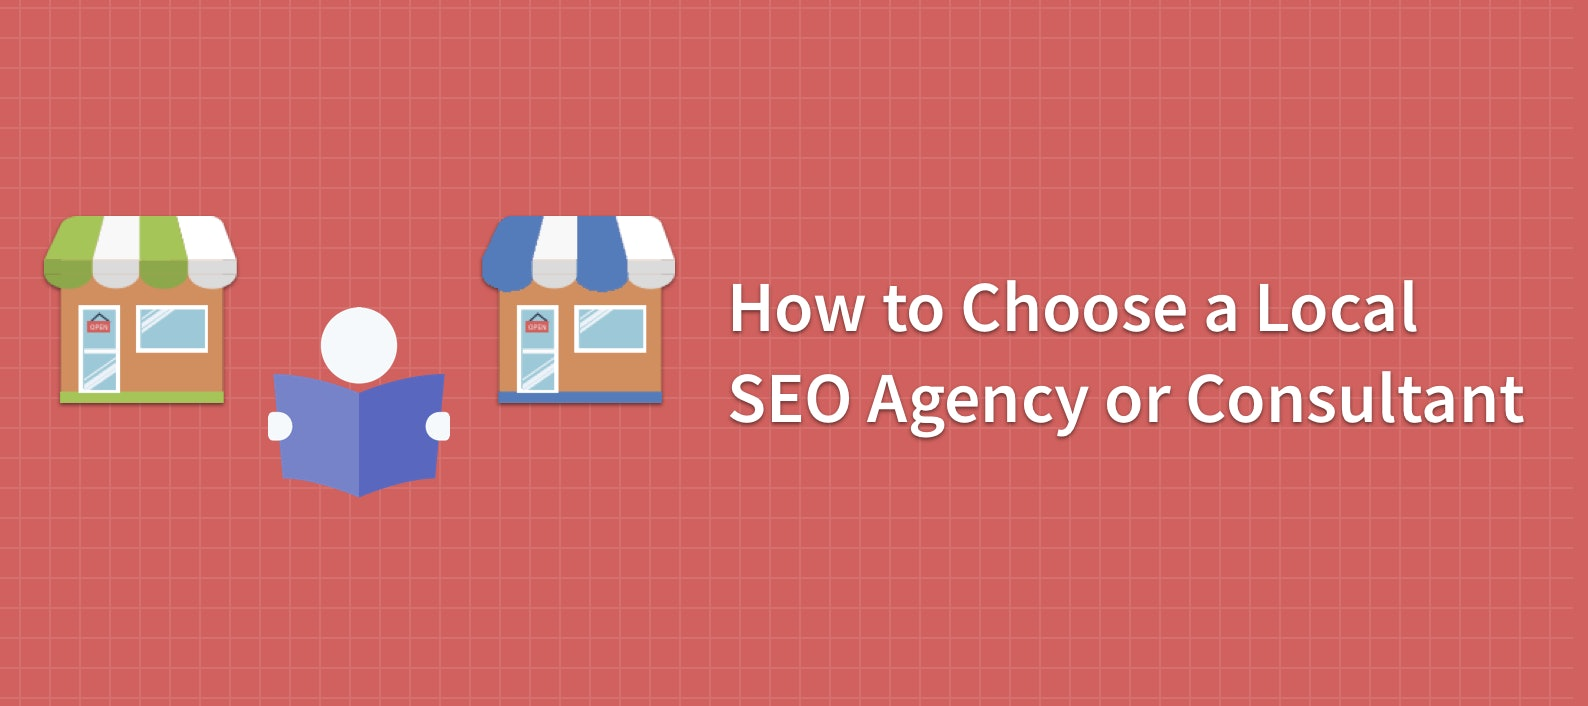 How to Choose a Local SEO Agency or Consultant